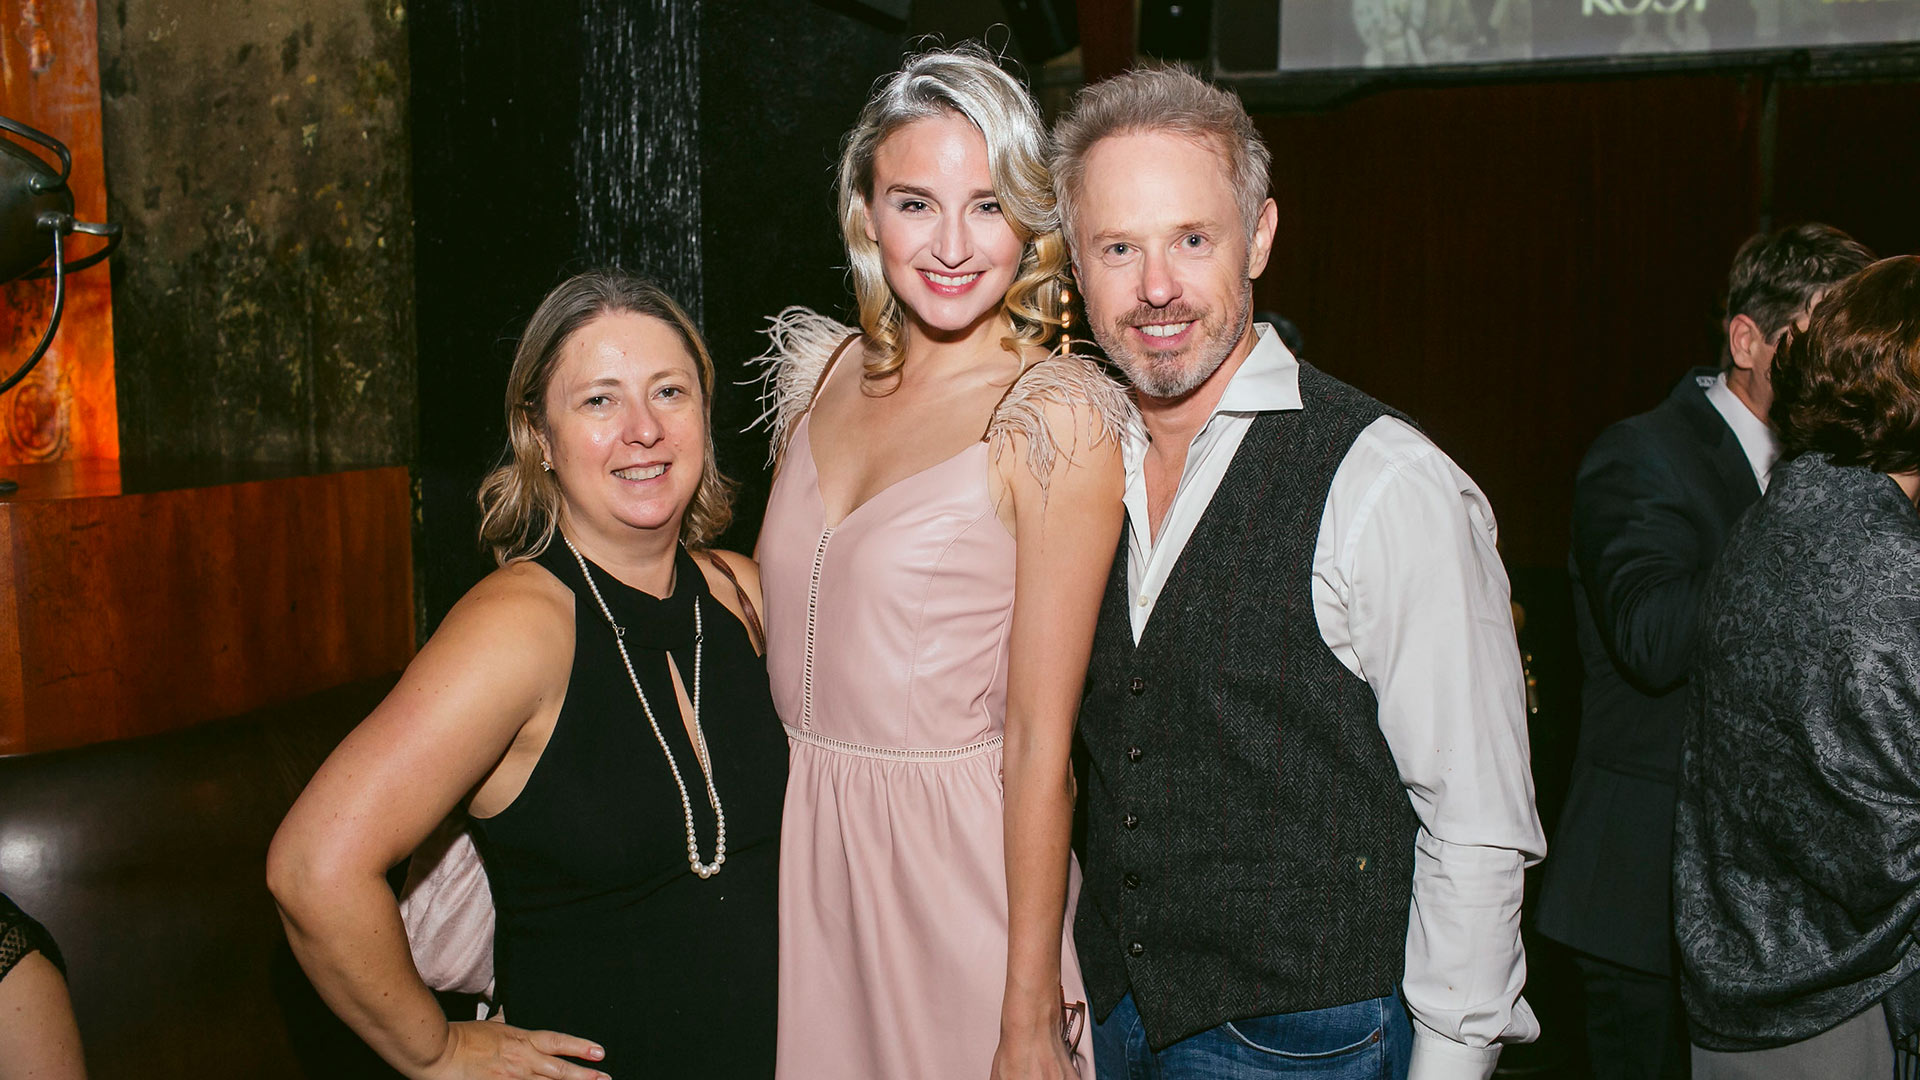 Publicist Zuzana Korda, actress Brianna Barnes and actor Raphael Sbarge attend KCET's LOST LA event at The Edison on October 22, 2019.